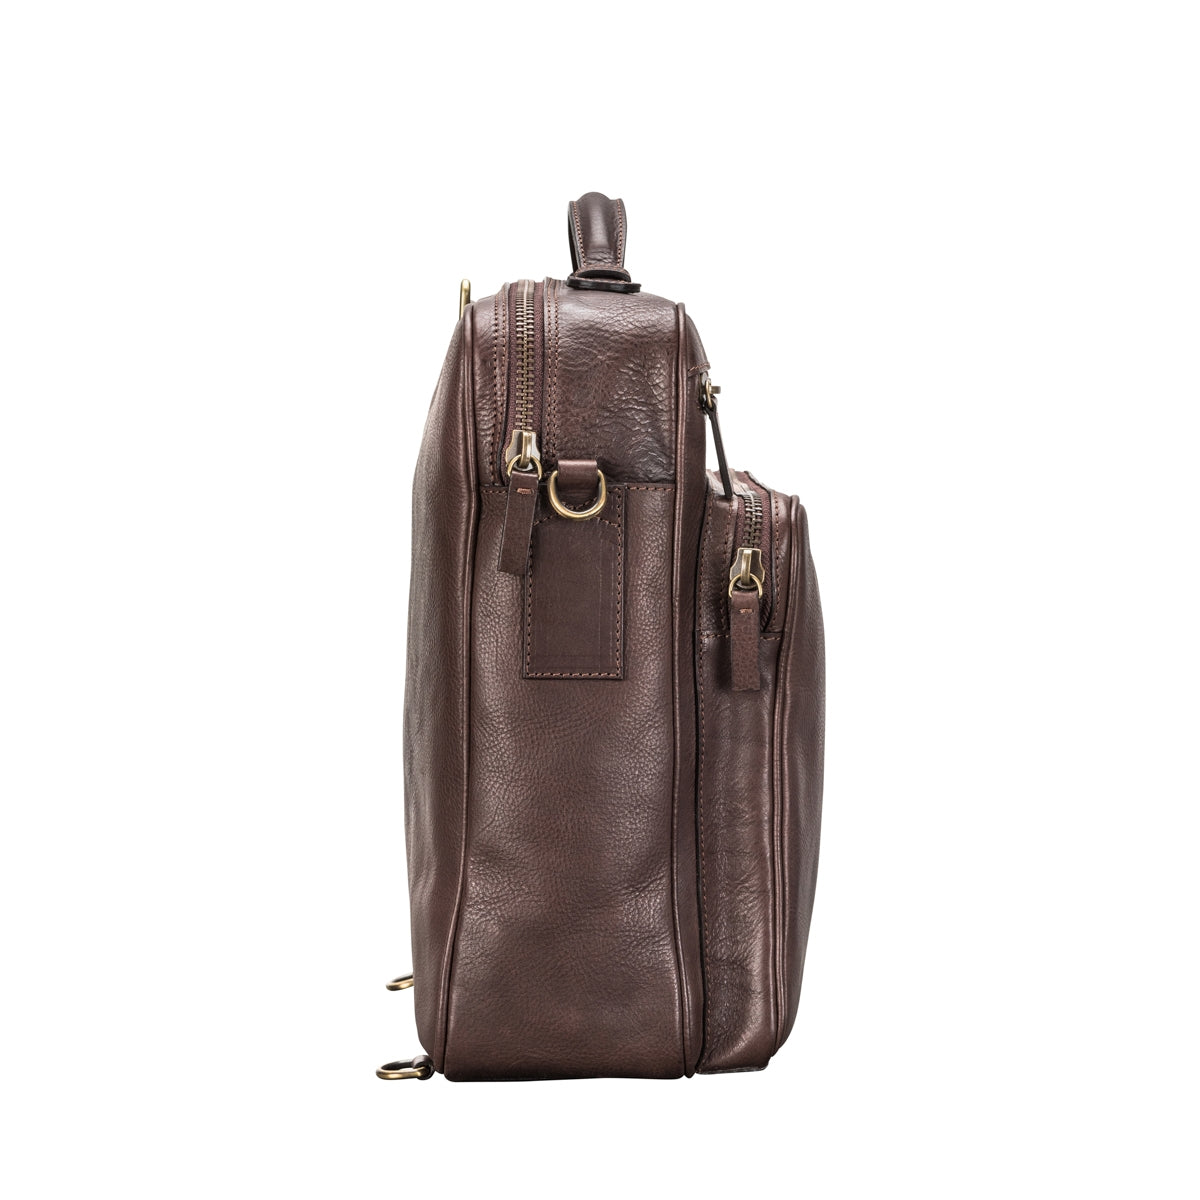 Image 3 of the 'SantinoL' Men's Brown Leather Convertible Backpack Shoulder